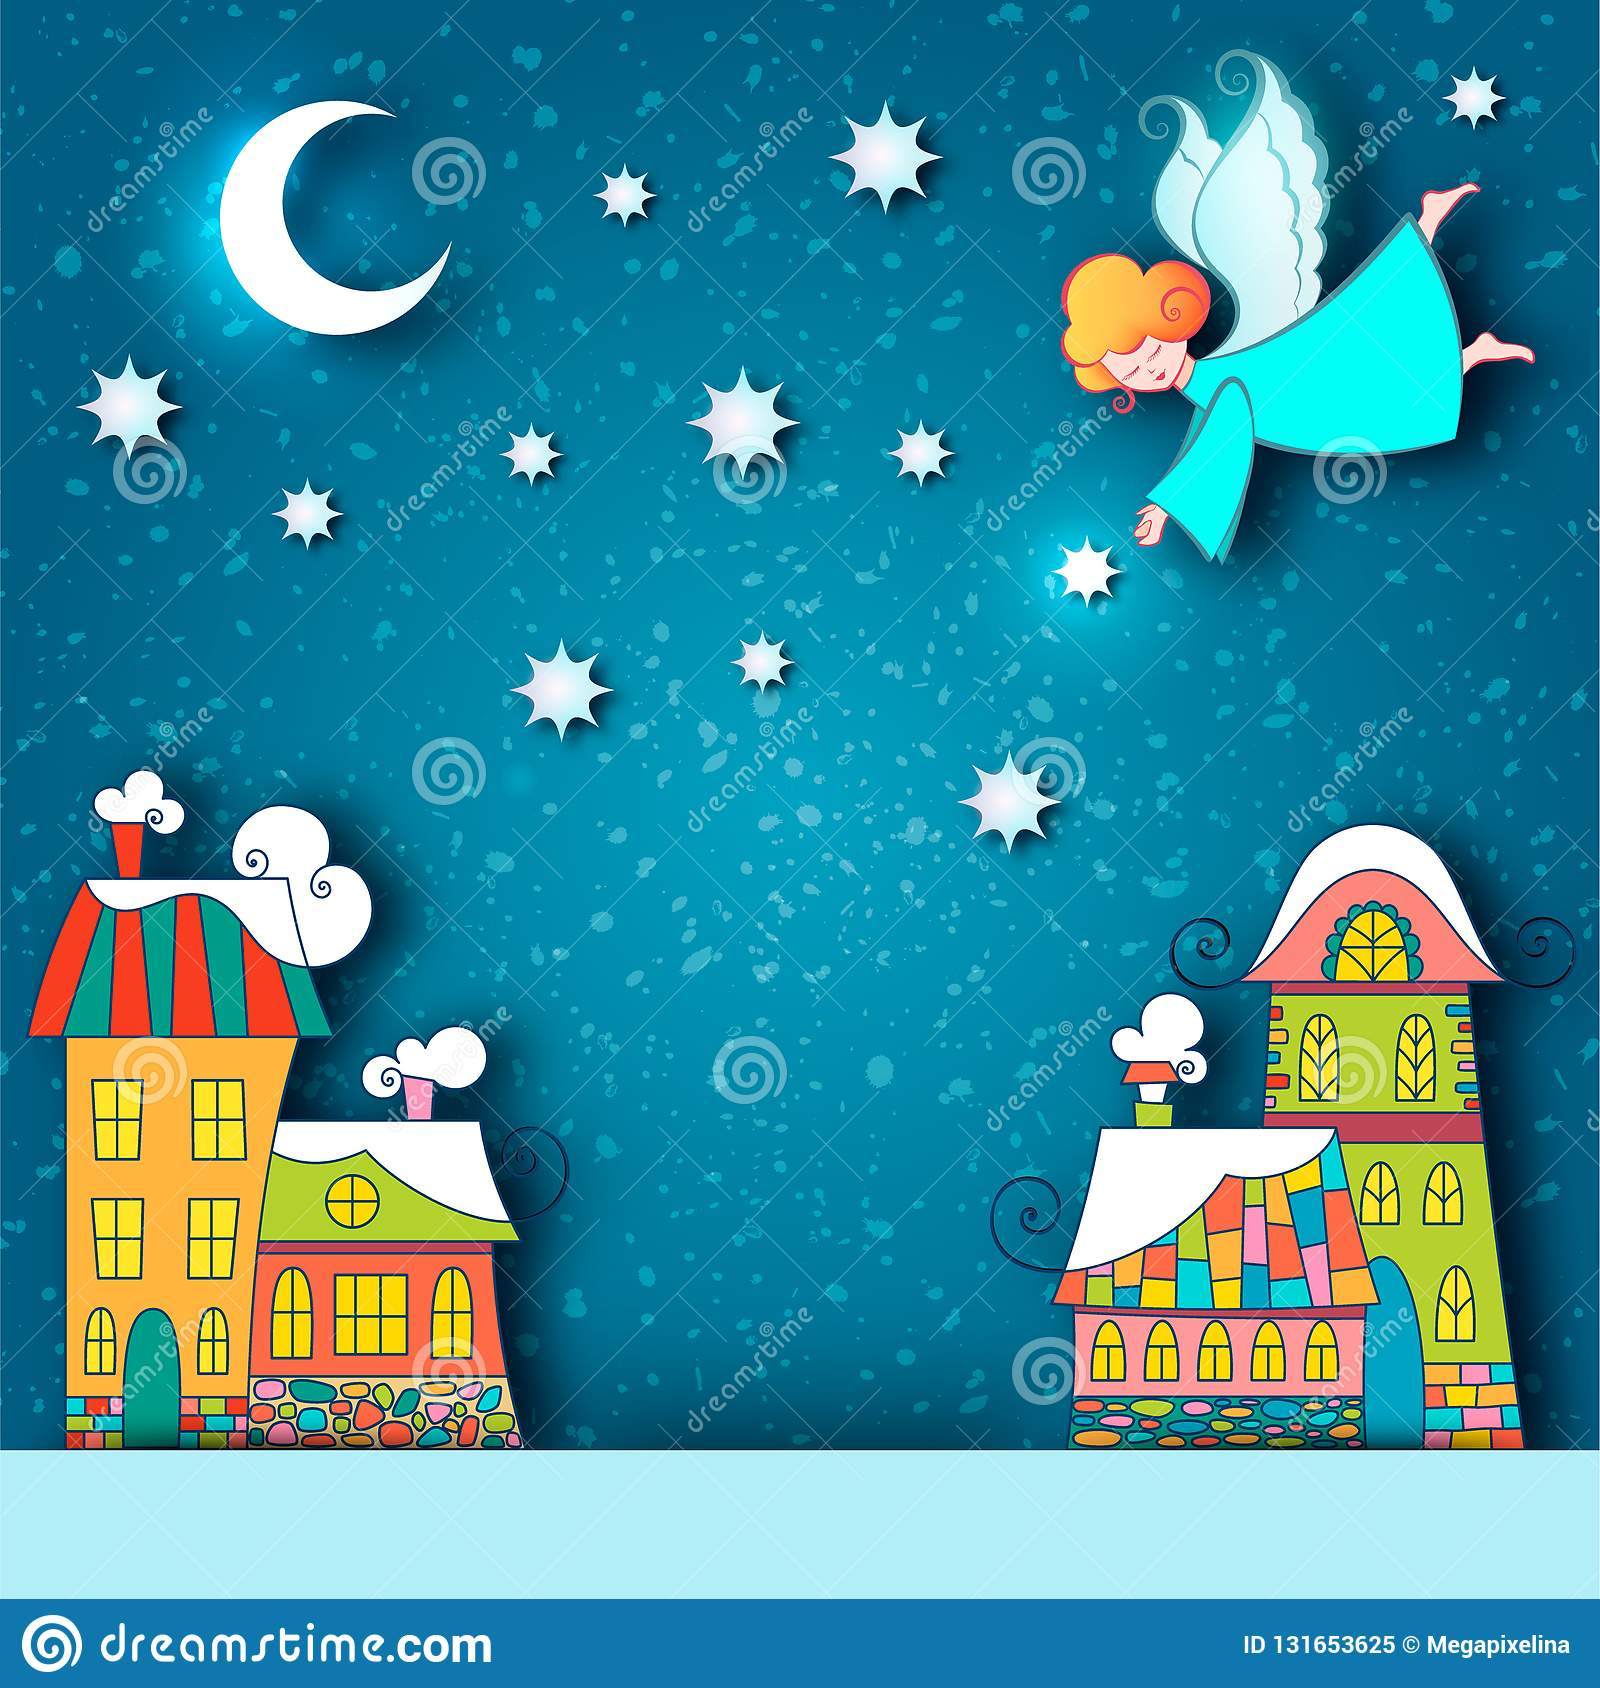 Winter Snowy City Landscape  Christmas Background With Fairy